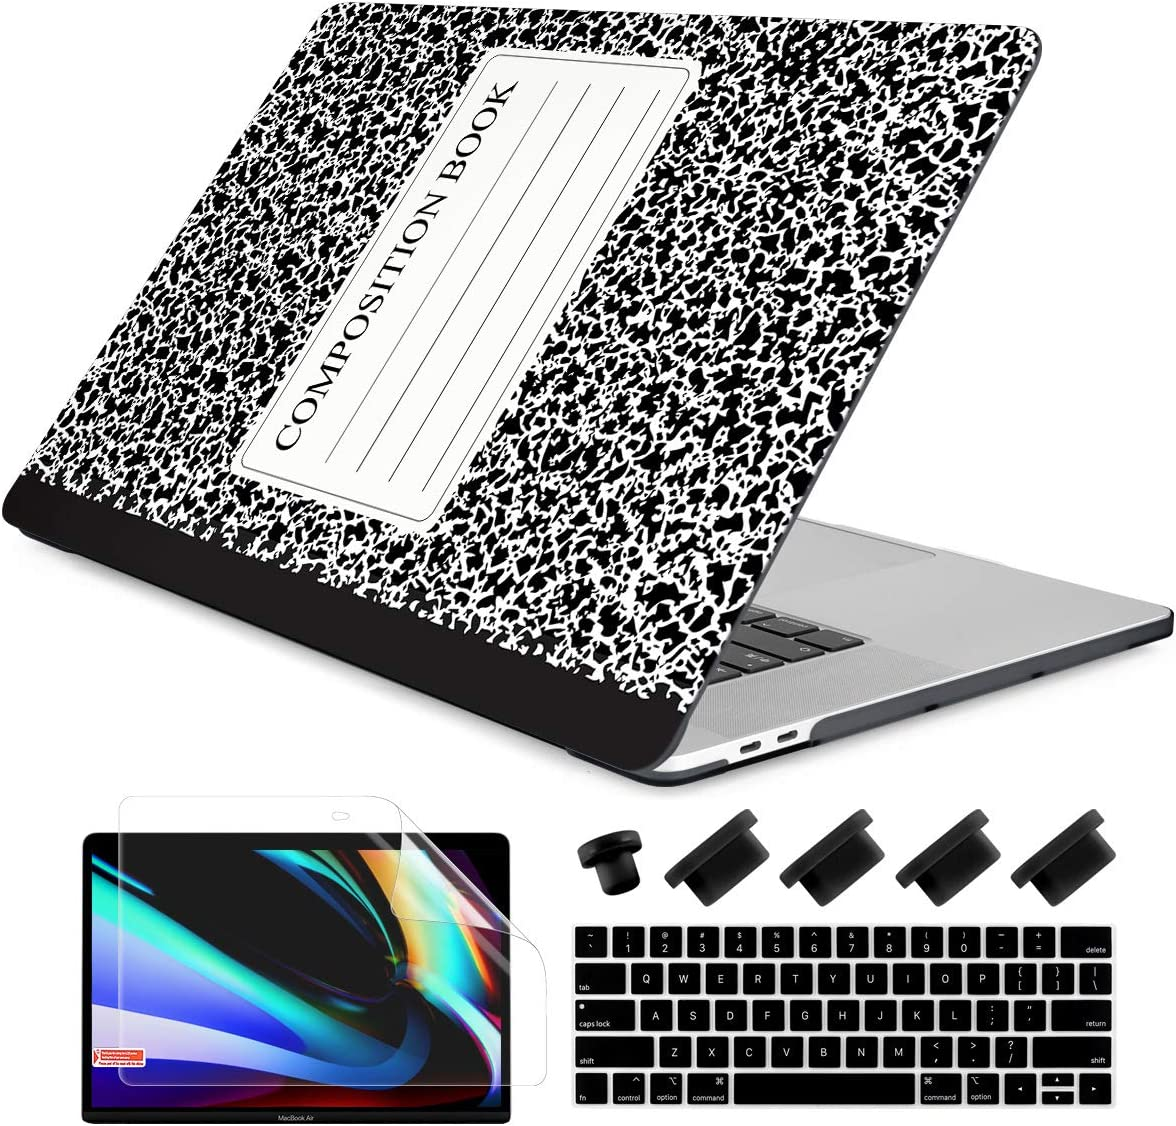 """Dongke Macbook Pro 13 inch Case 2019 2018 2017 2016 Release A2159 A1989 A1706 A1708, Composition Book Frosted Matte Hard Shell Cover & Keyboard Cover Compatible with MacBook Pro 13"""" With/out Touch Bar"""